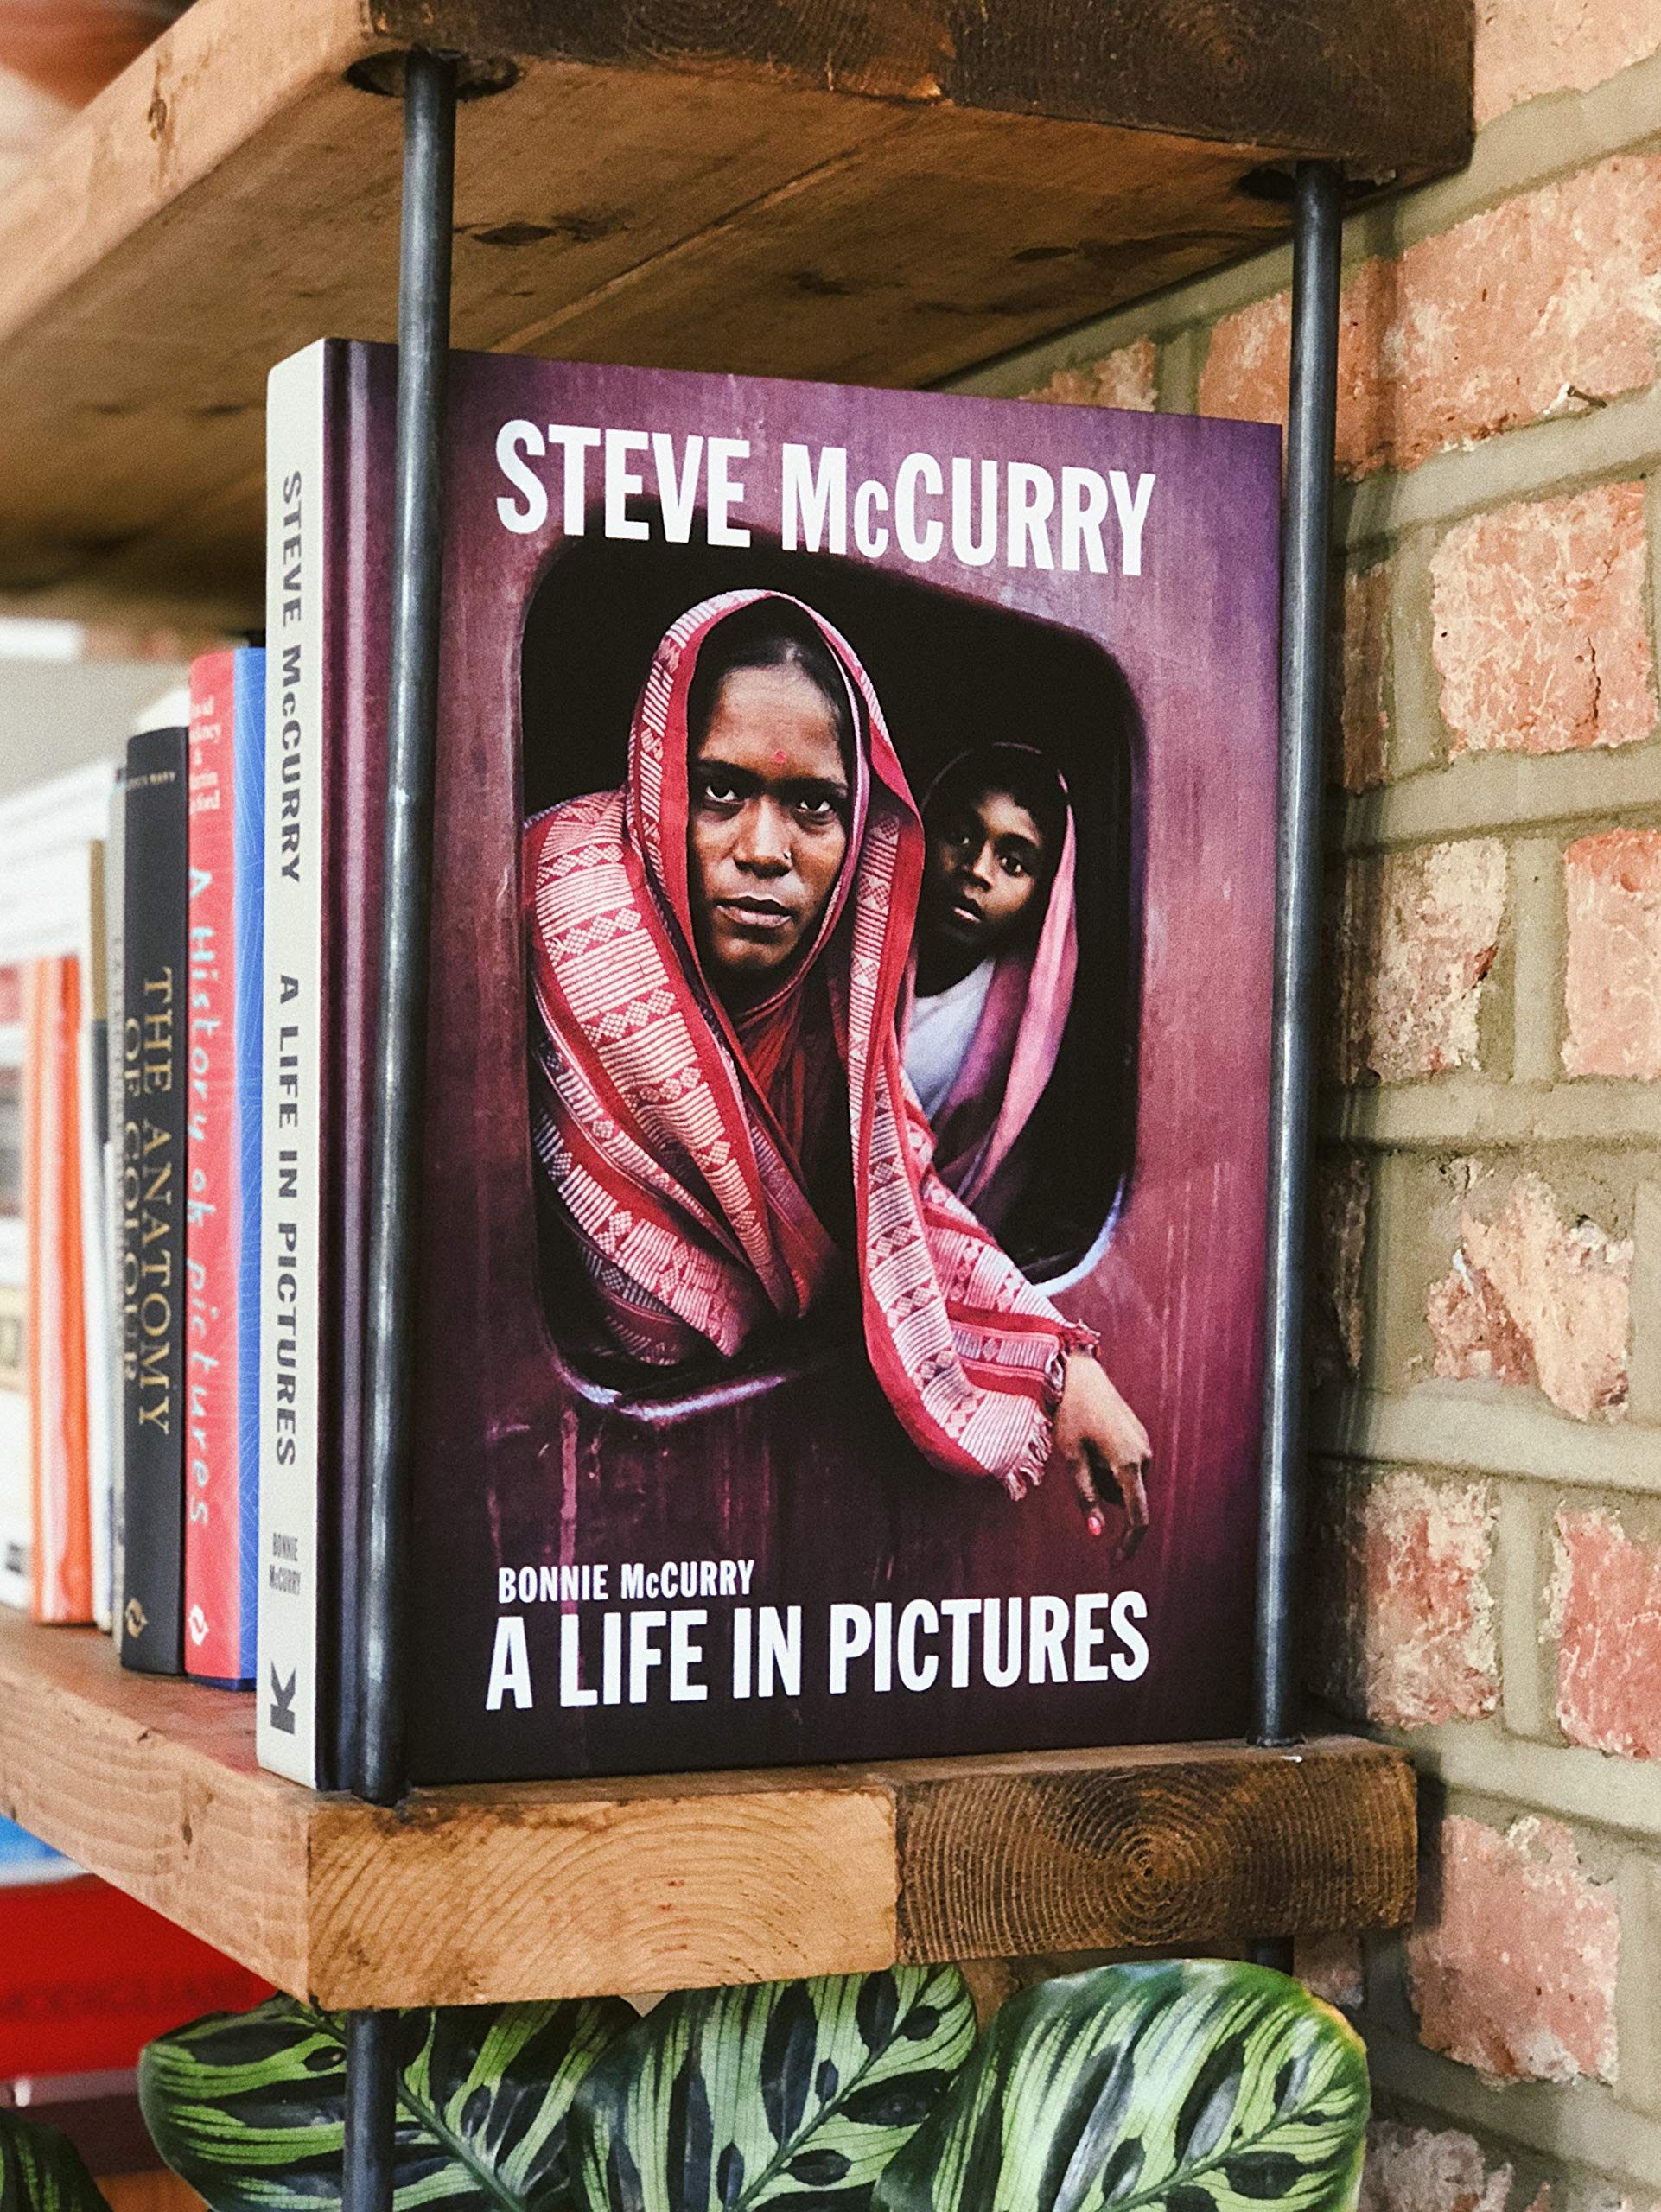 Ebook download mccurry steve